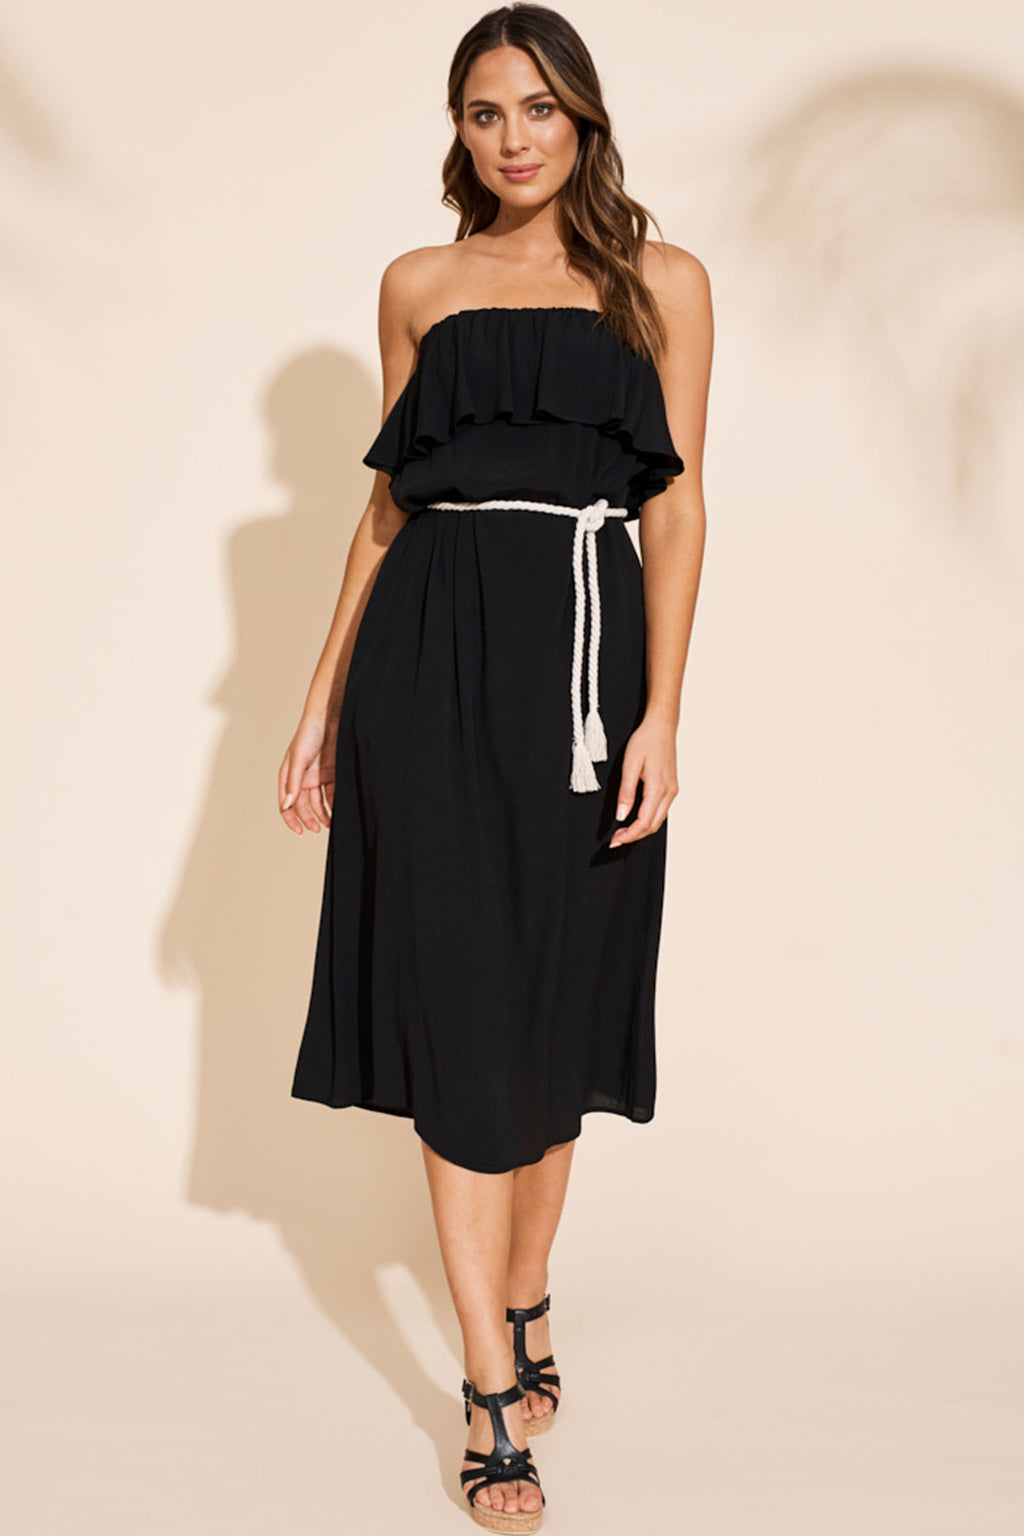 Savannah Dress - Black - The Bohemian Corner